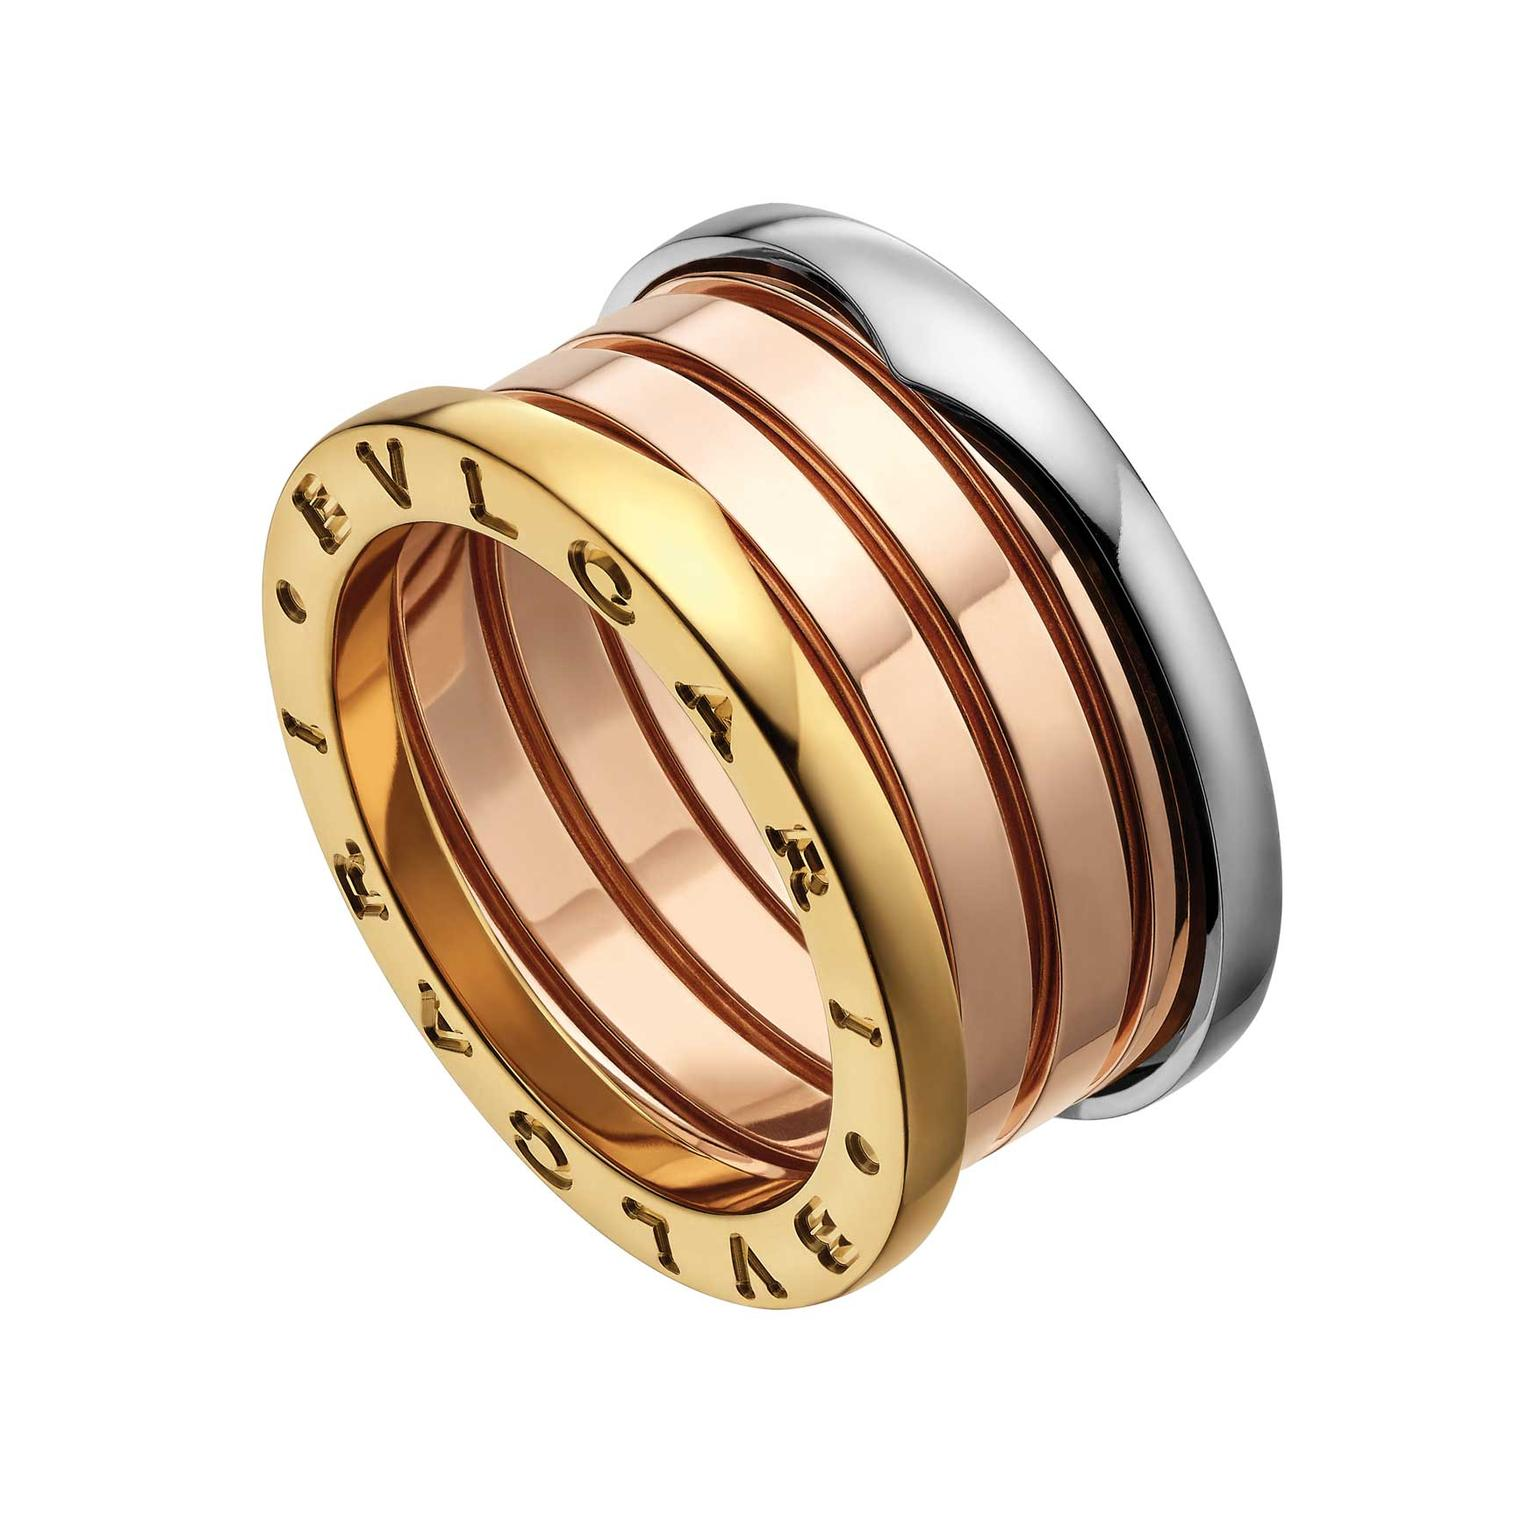 Bulgari B.zero1 ring in white, rose and yellow gold